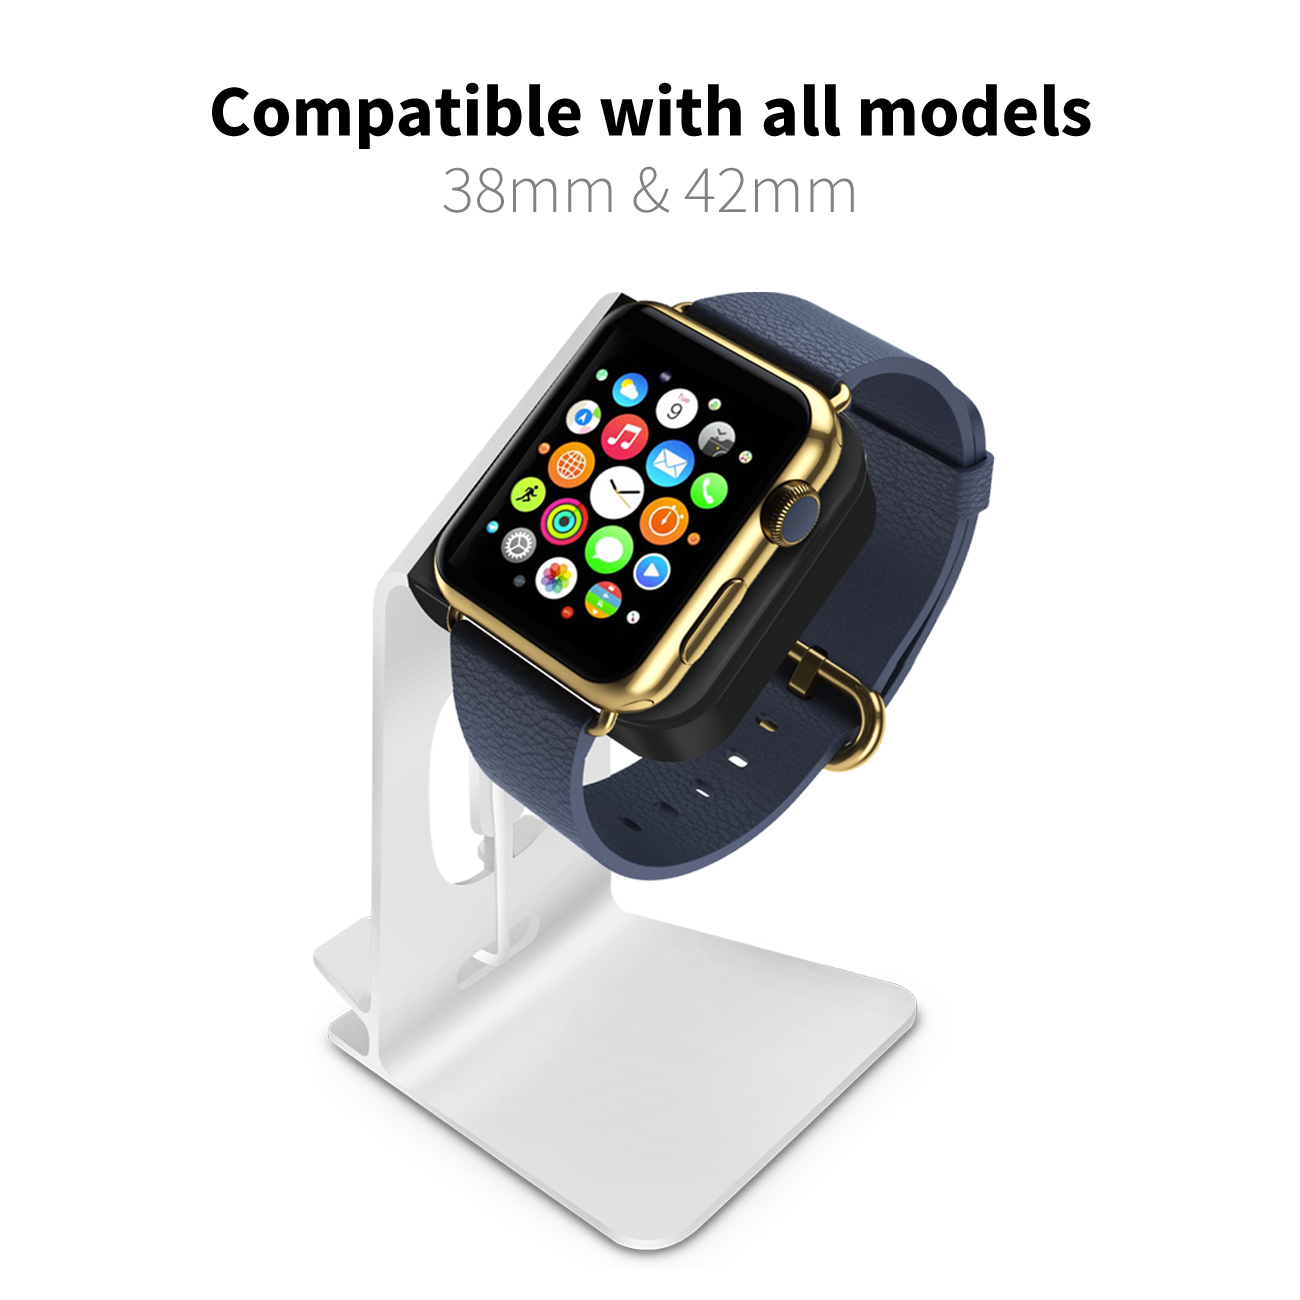 Apple-Watch-Stand-Orzly-2